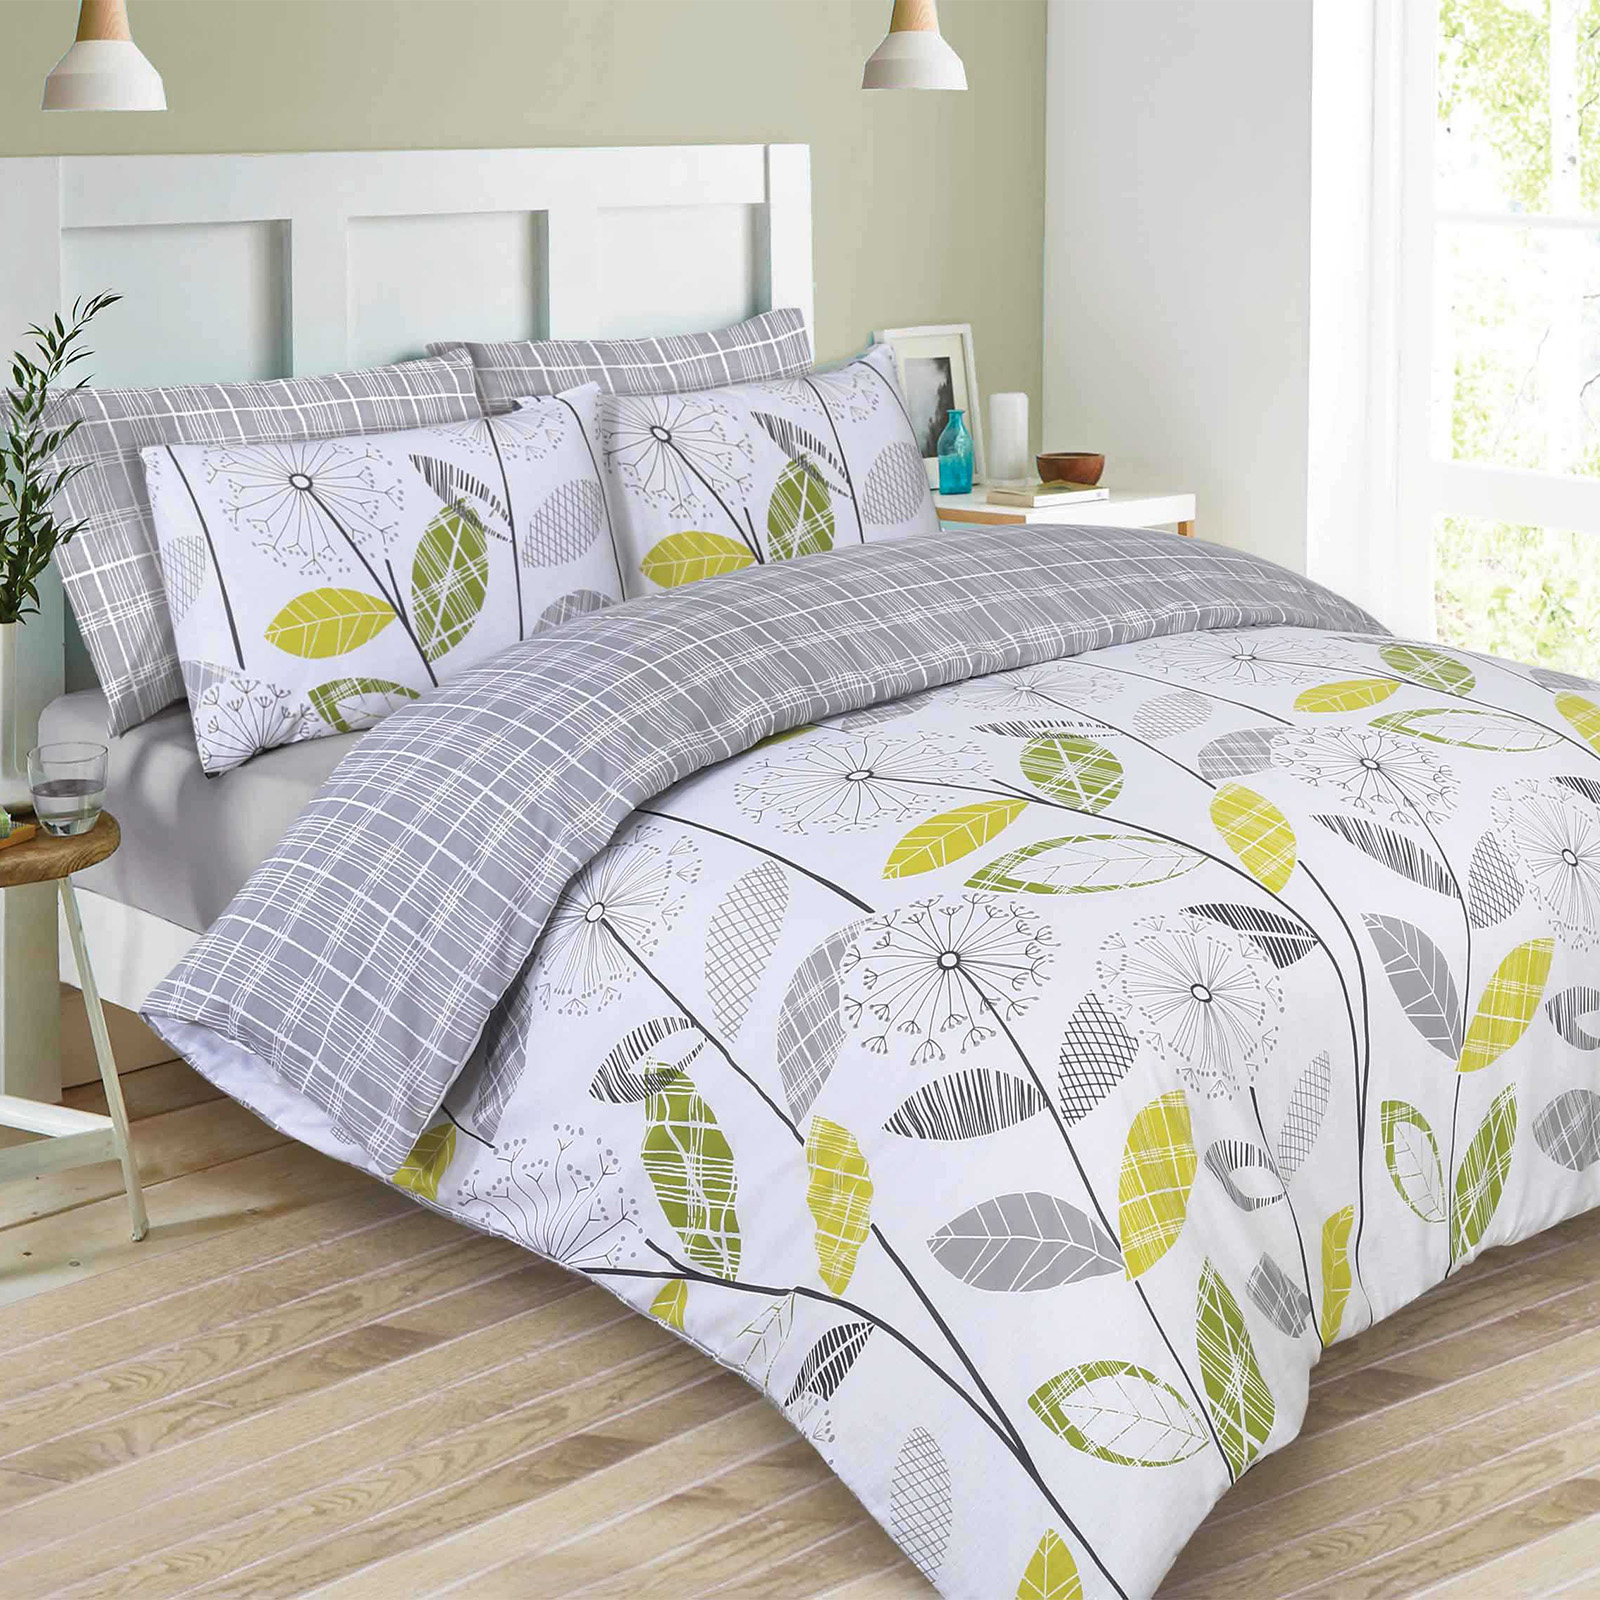 Dreamscene-Allium-Duvet-Cover-with-Pillowcase-Reversible-Check-Bedding-Set-Grey